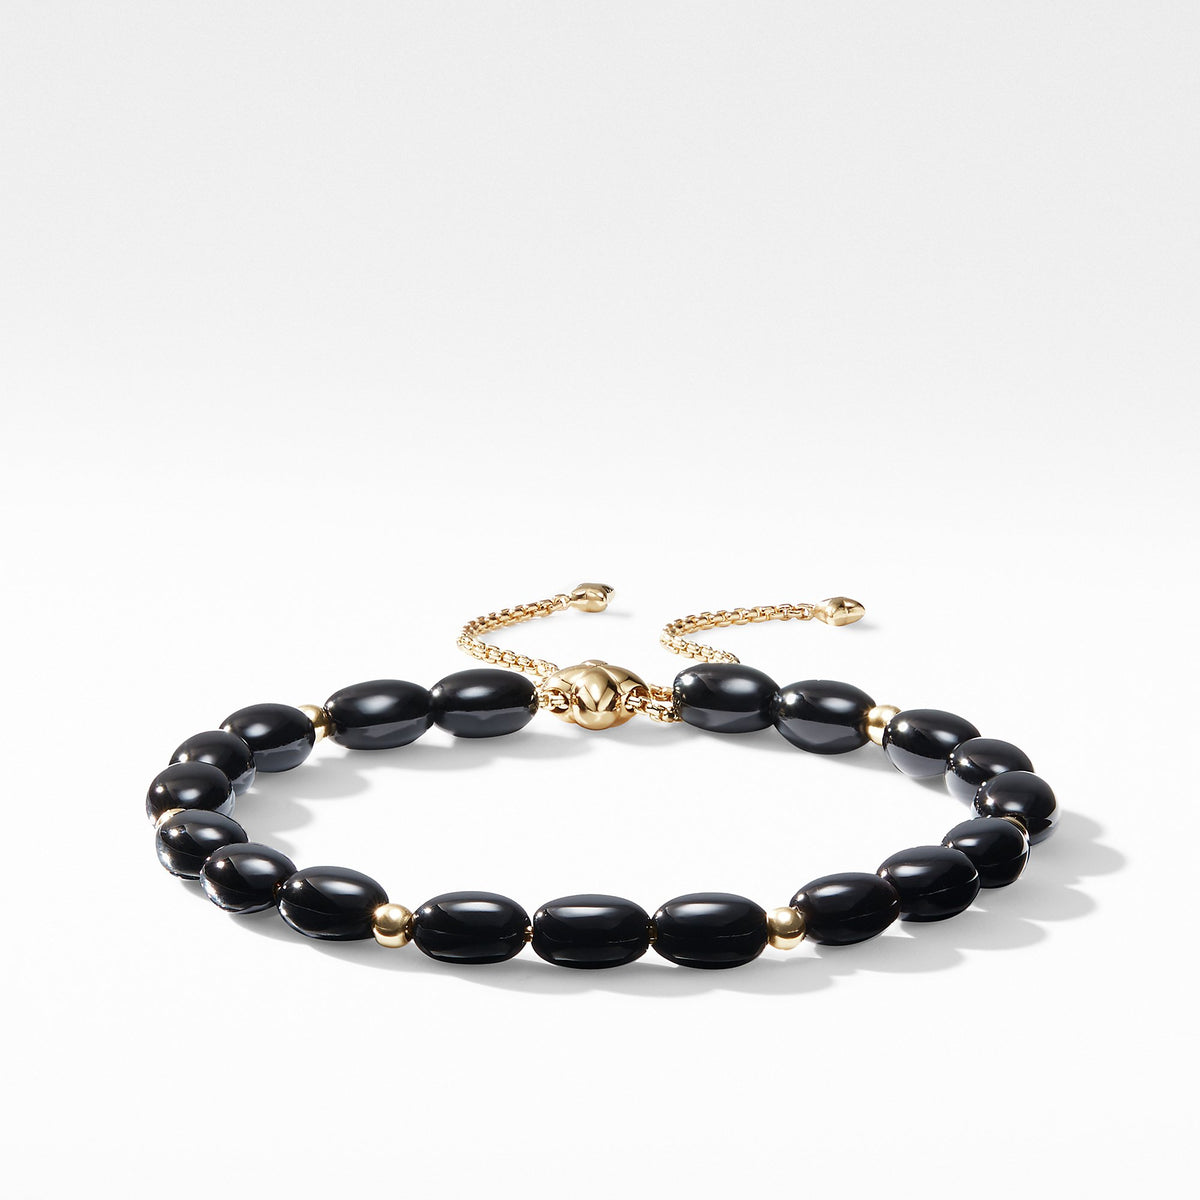 Spiritual Bead Bracelet with Black Onyx and 18K Gold